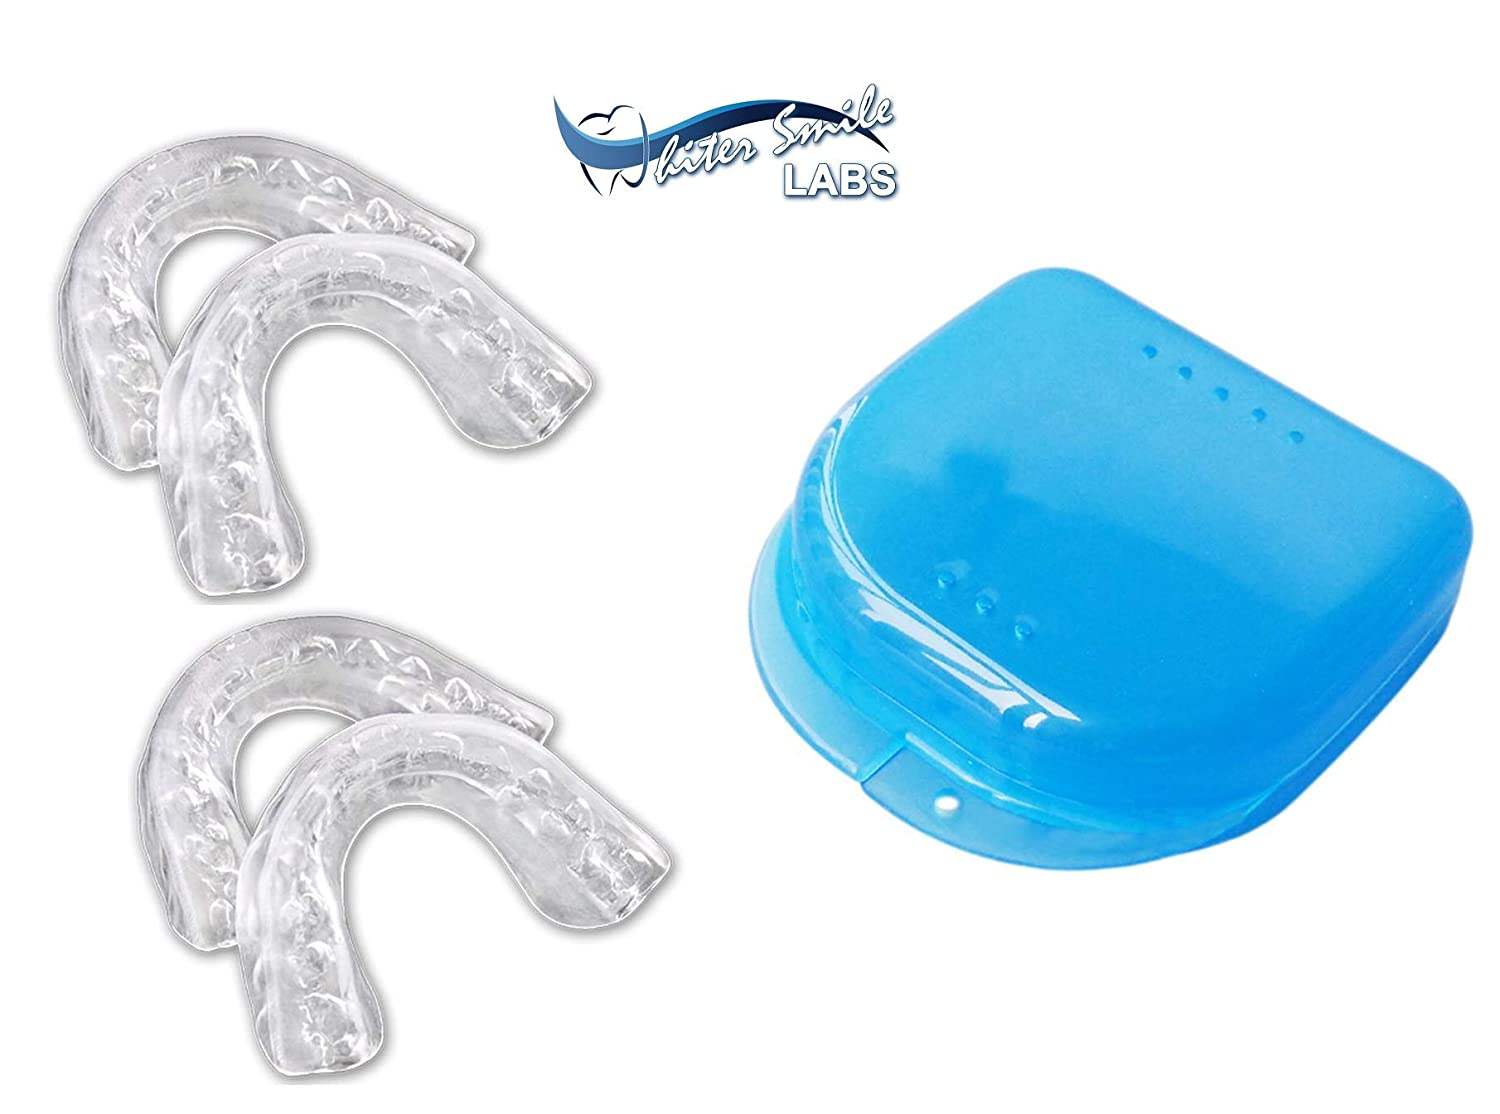 Whiter Smile Labs Teeth Whitening Trays - BPA Free - Thin Moldable Mouth Trays Form Perfectly To Each Tooth (4 trays)